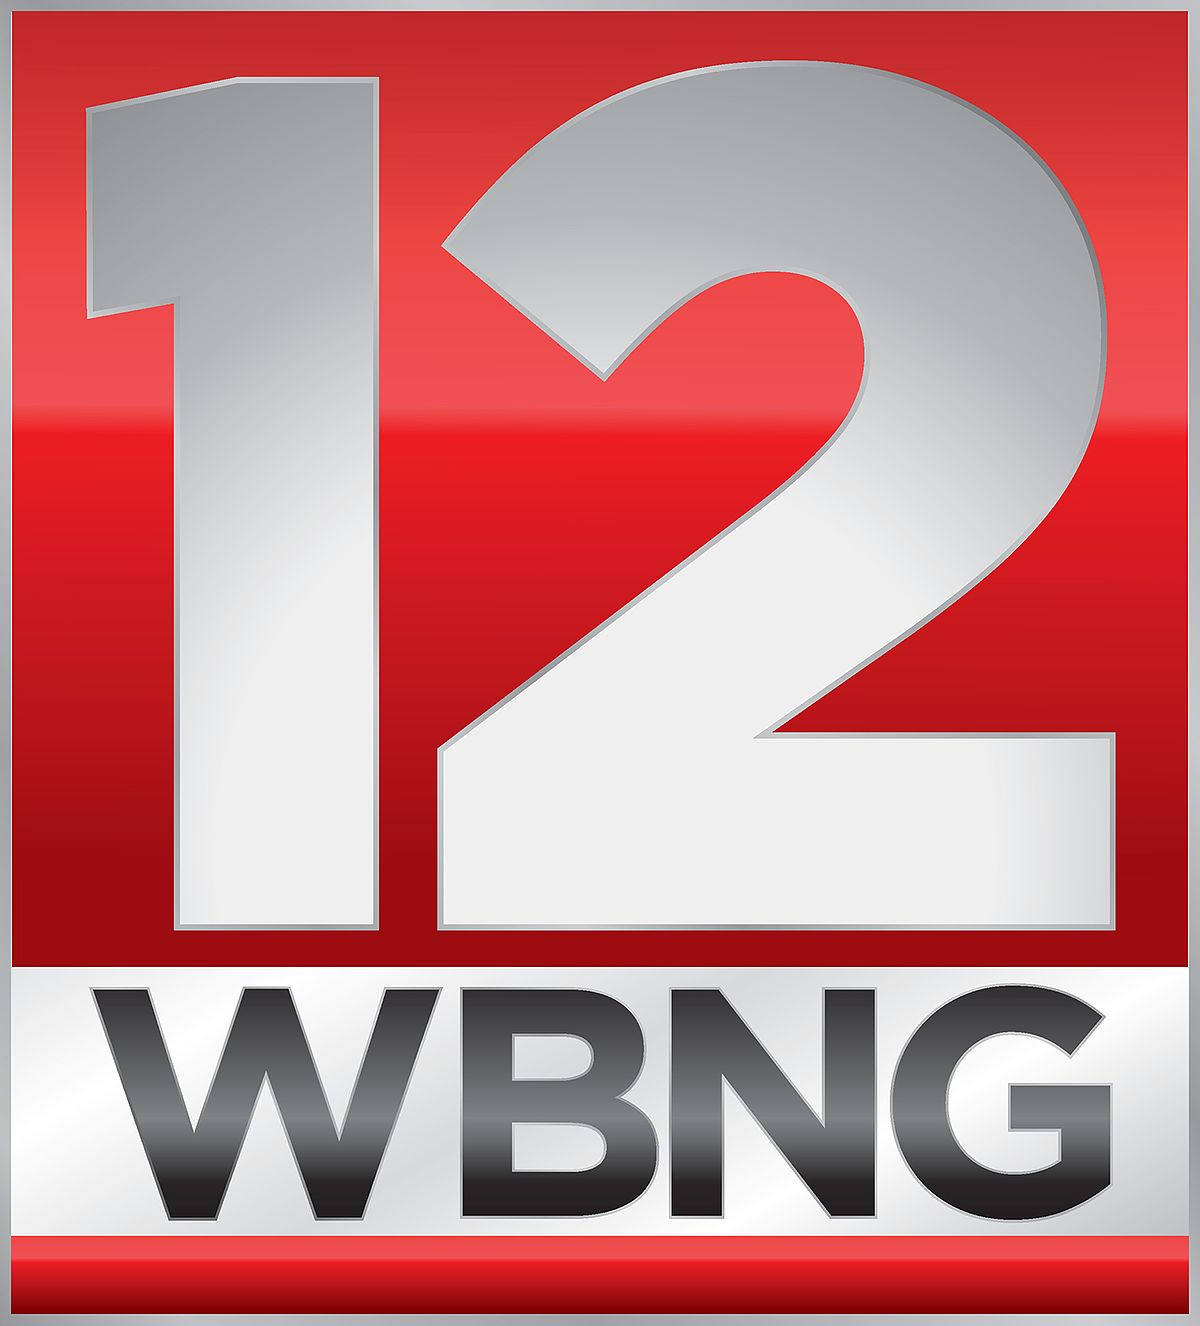 News Channel Wbng-tv - Wikipedia